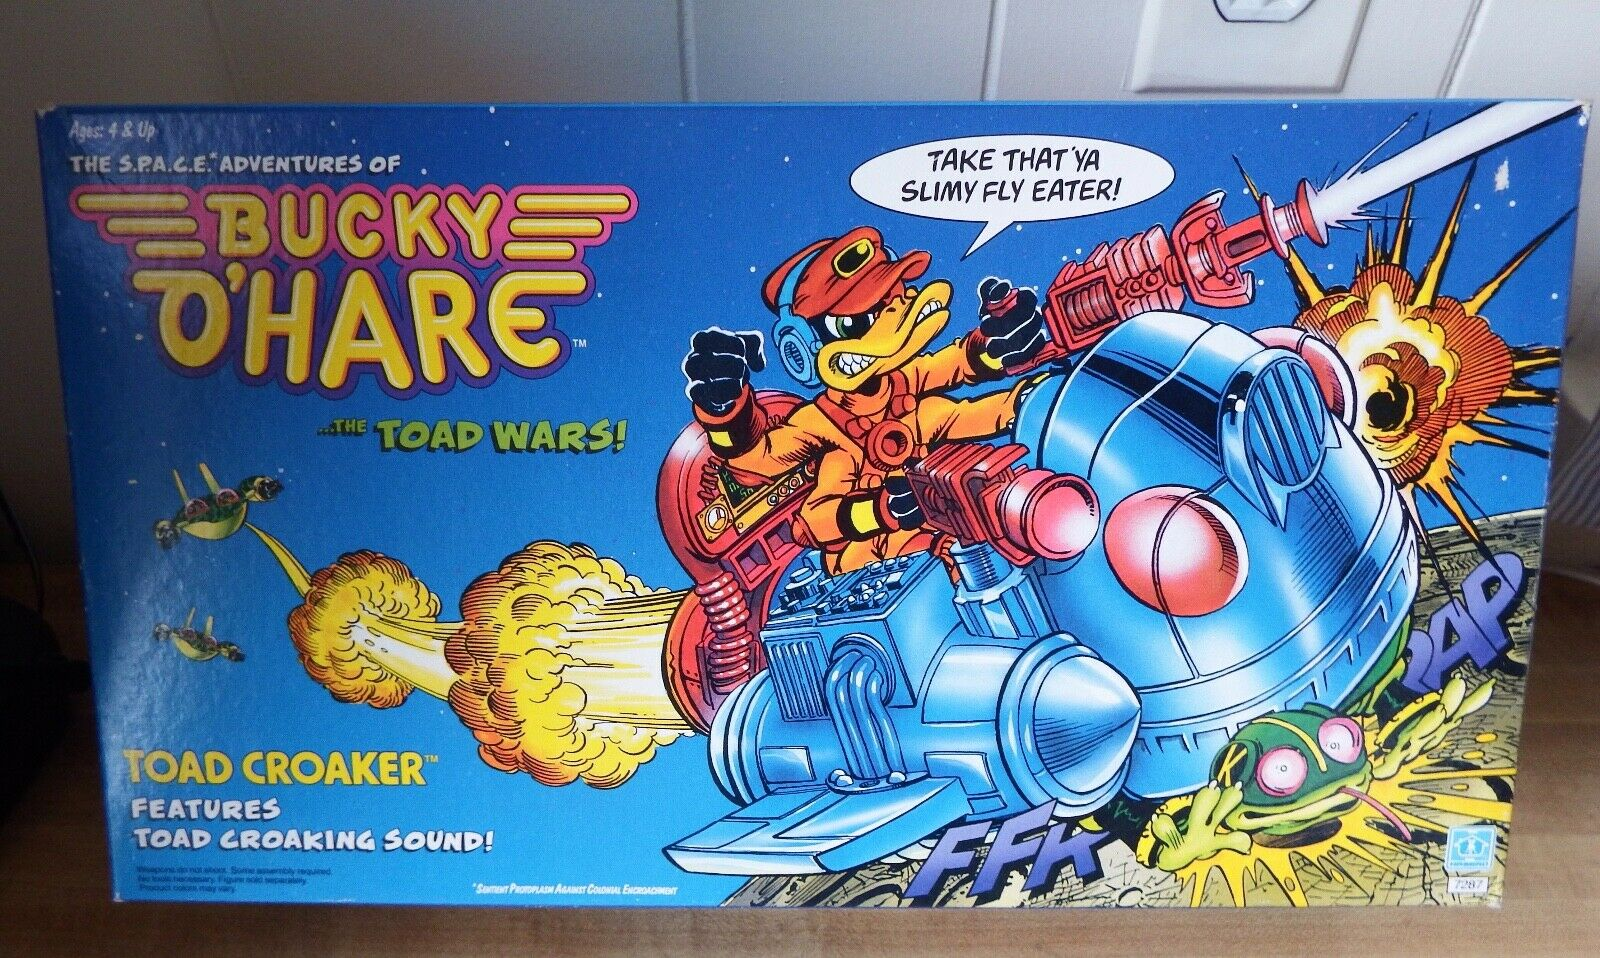 Hasbro BUCKY OHARE The Toad Wars TOAD CROAKER VEHICLE with TOAD CROAKING SOUND